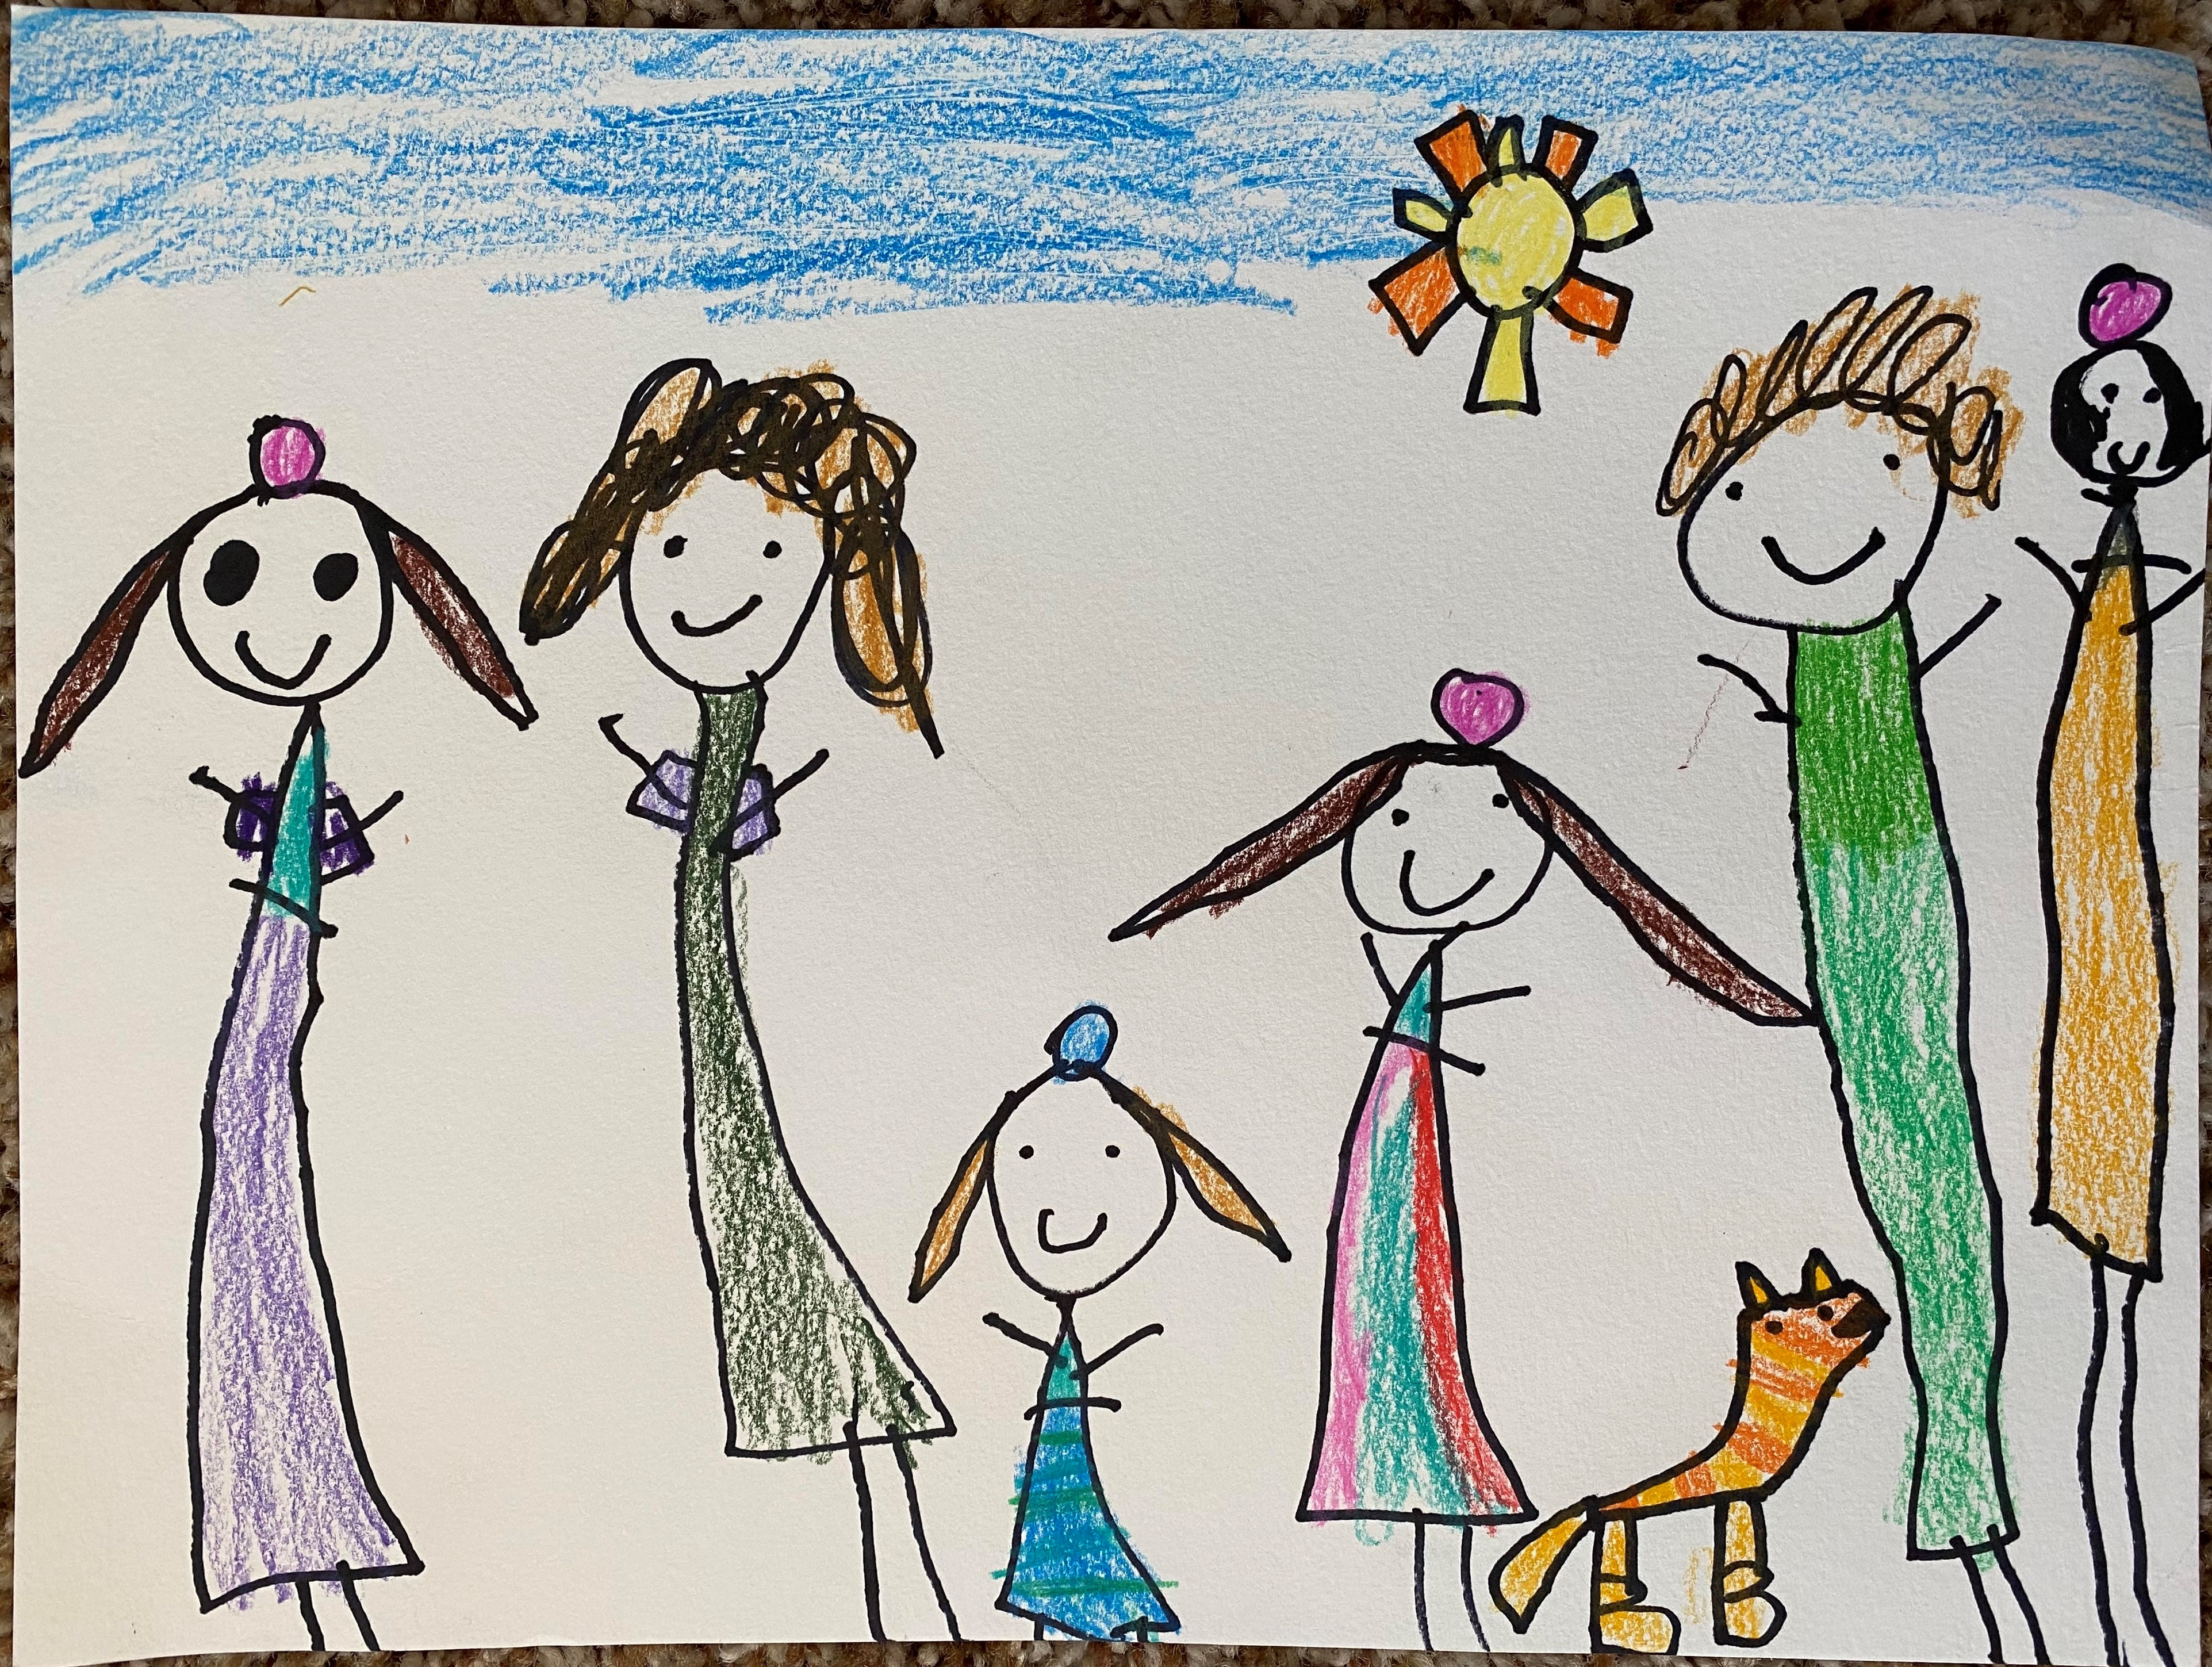 My Family 2 by Delaney Munk